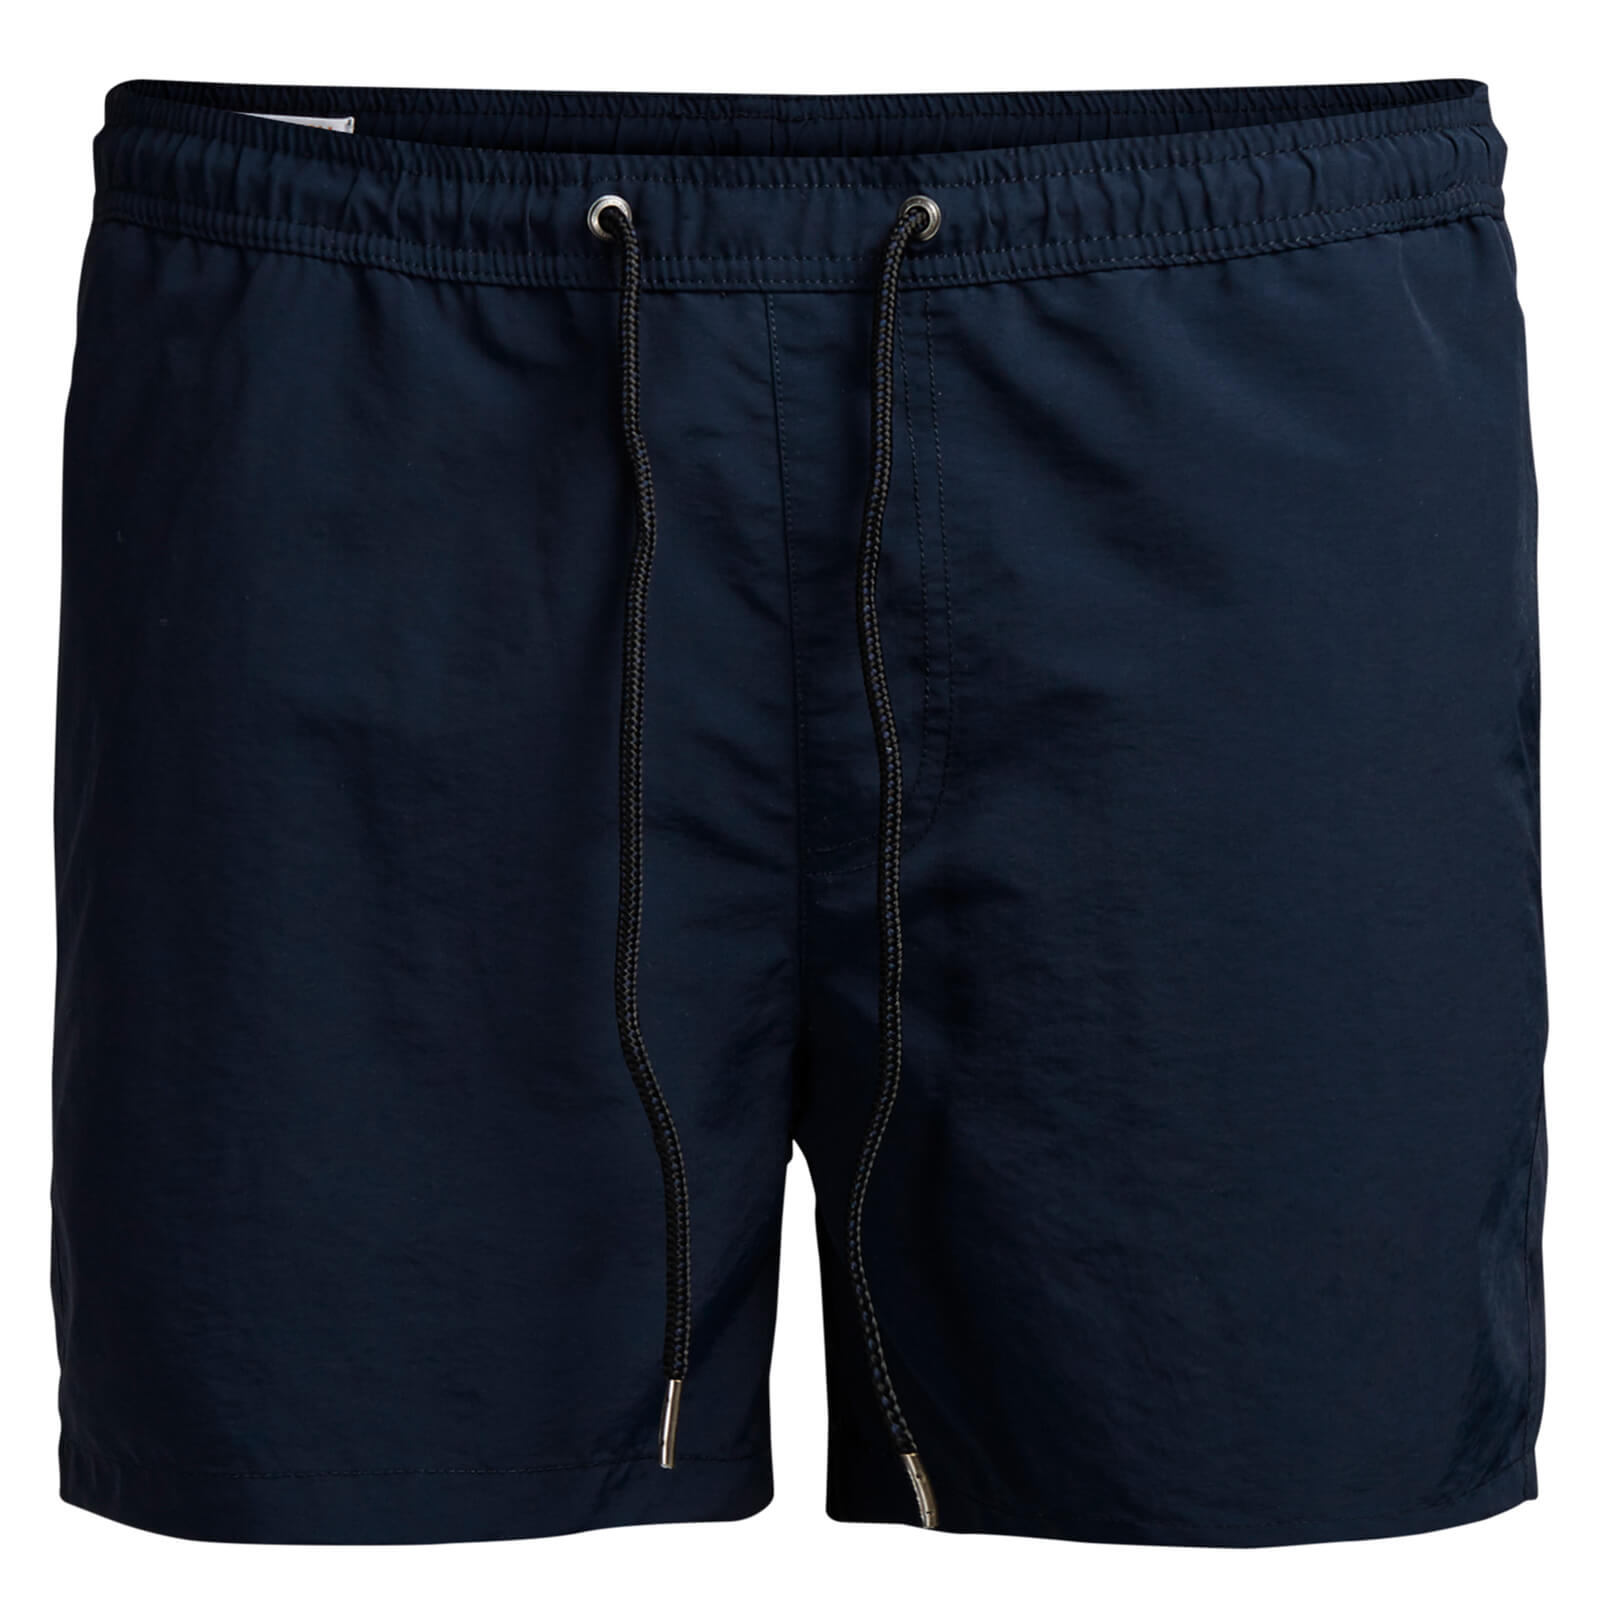 Short de Bain Sunset Jack & Jones -Bleu Marine